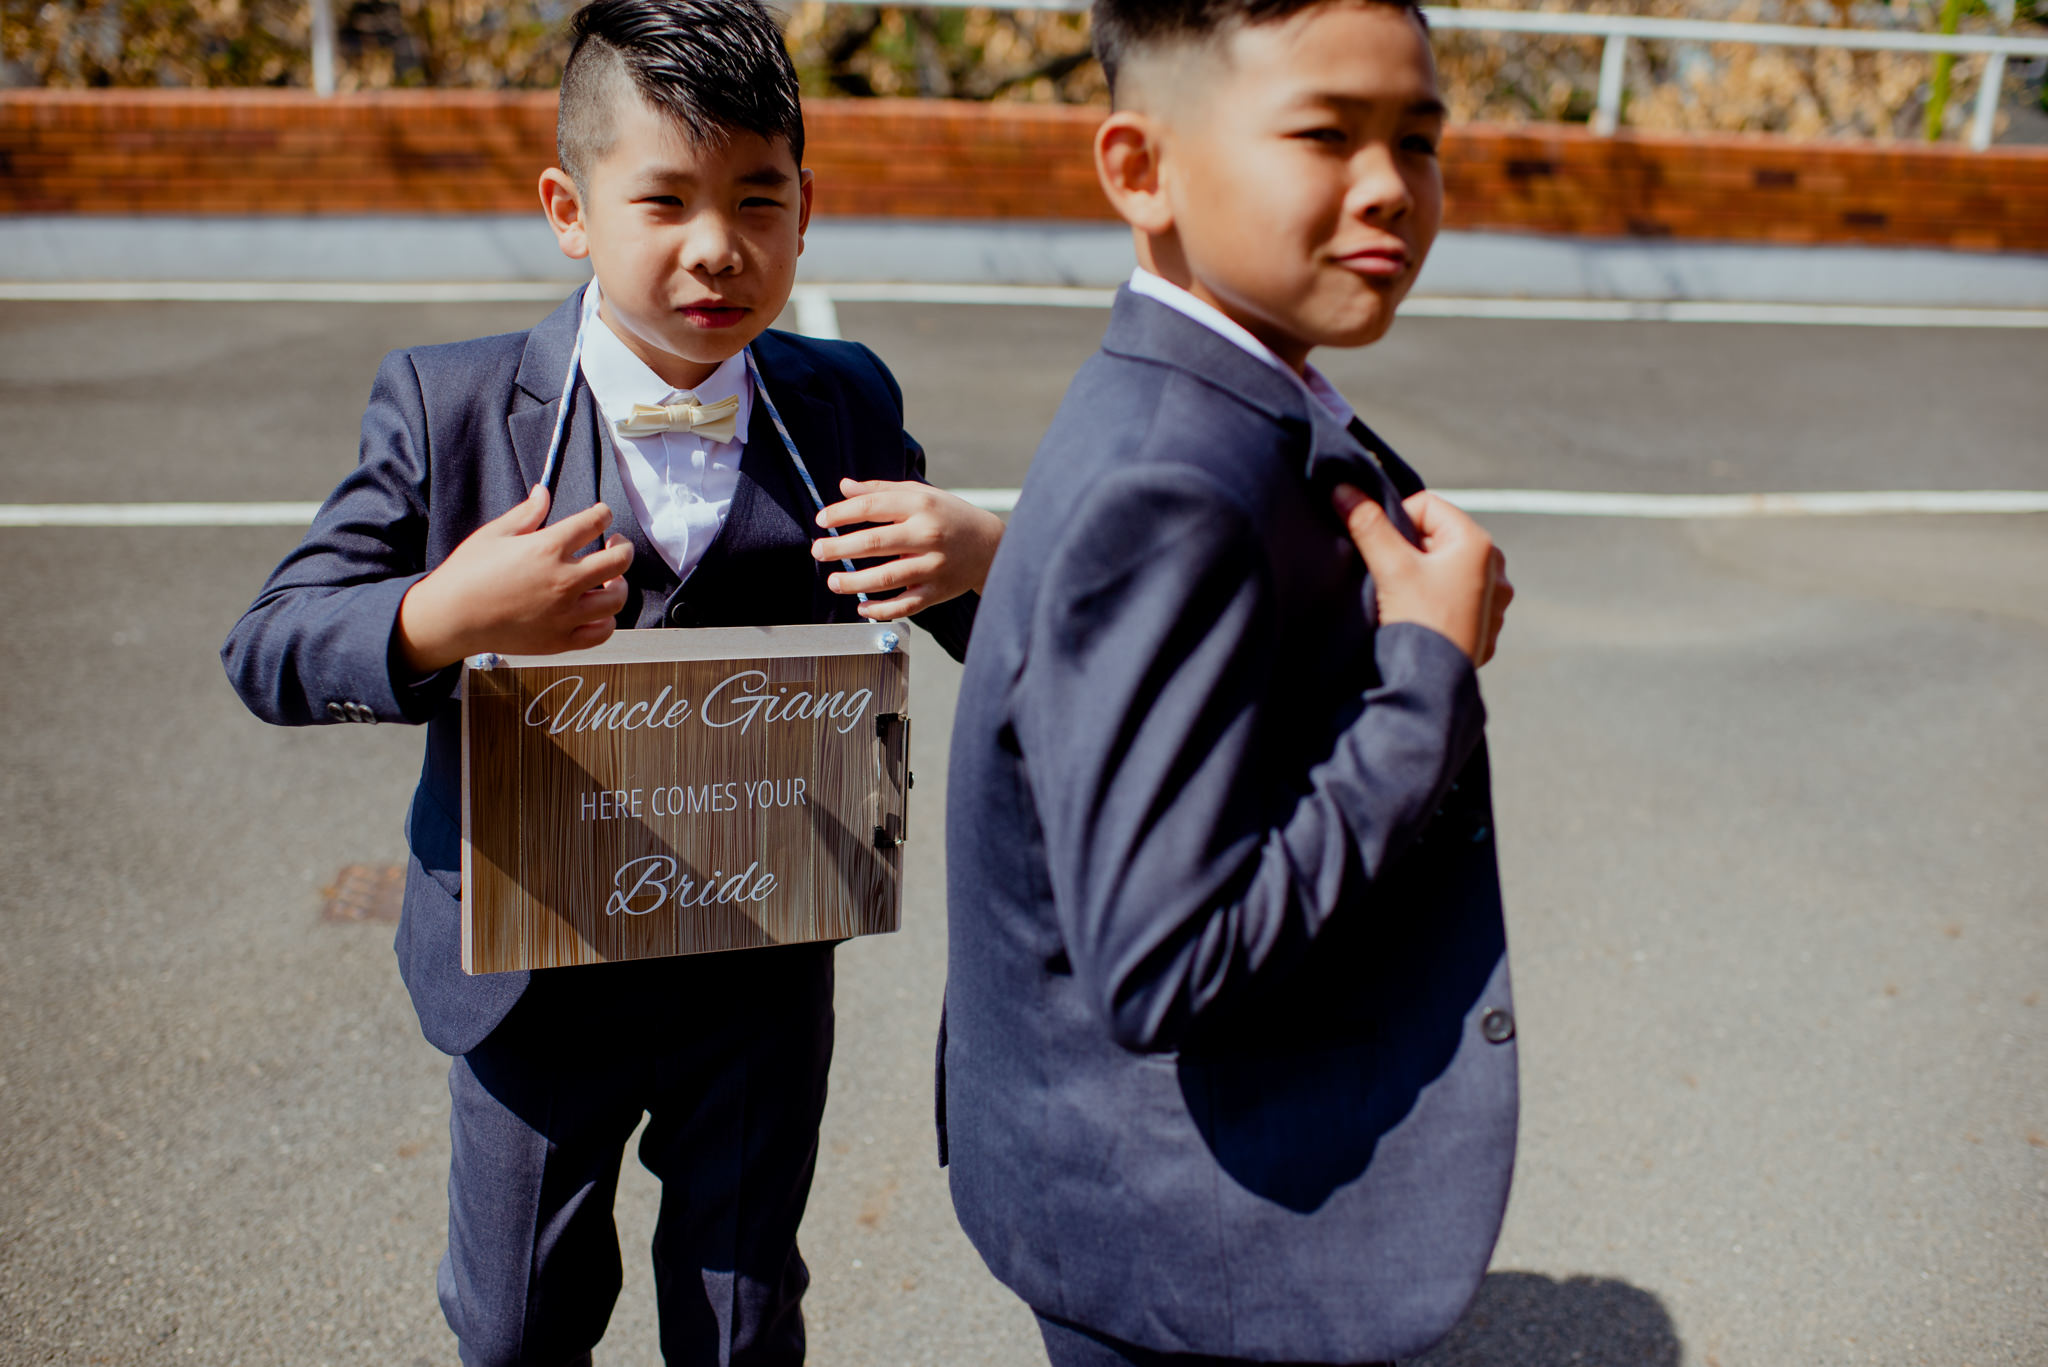 Two page boys in suits pose for a photo